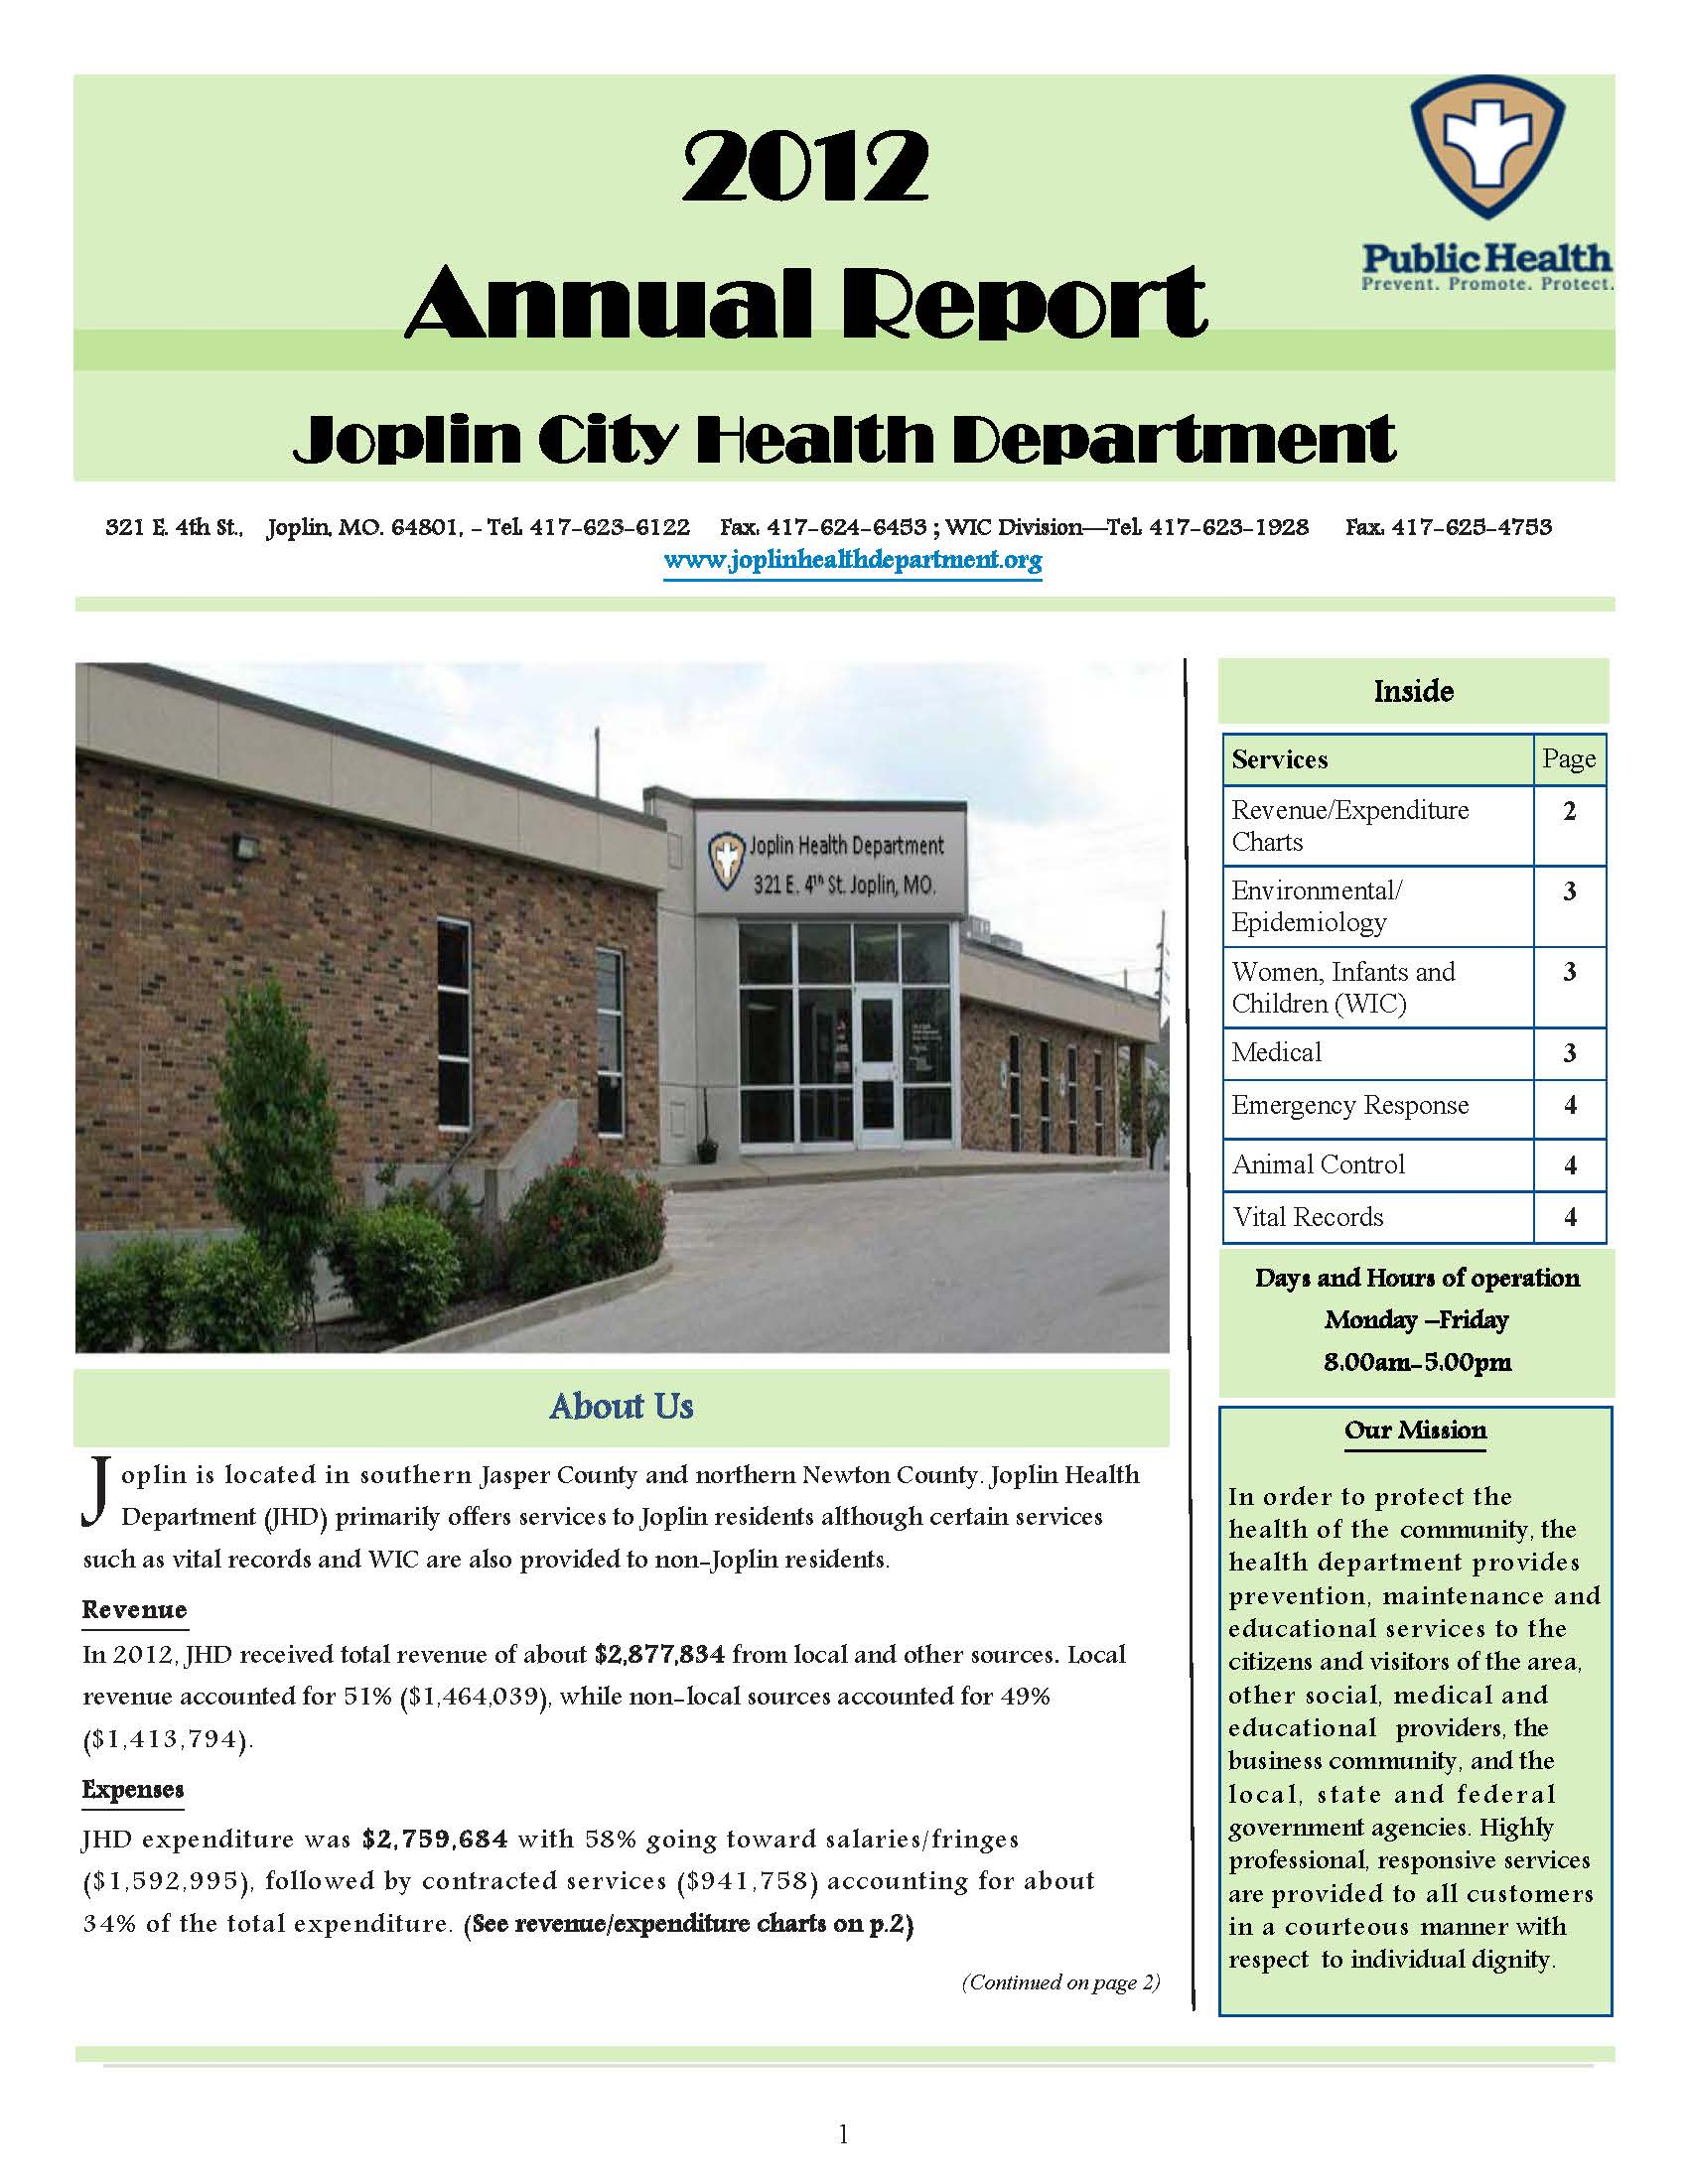 Annual Report 2012_Page_1.jpg